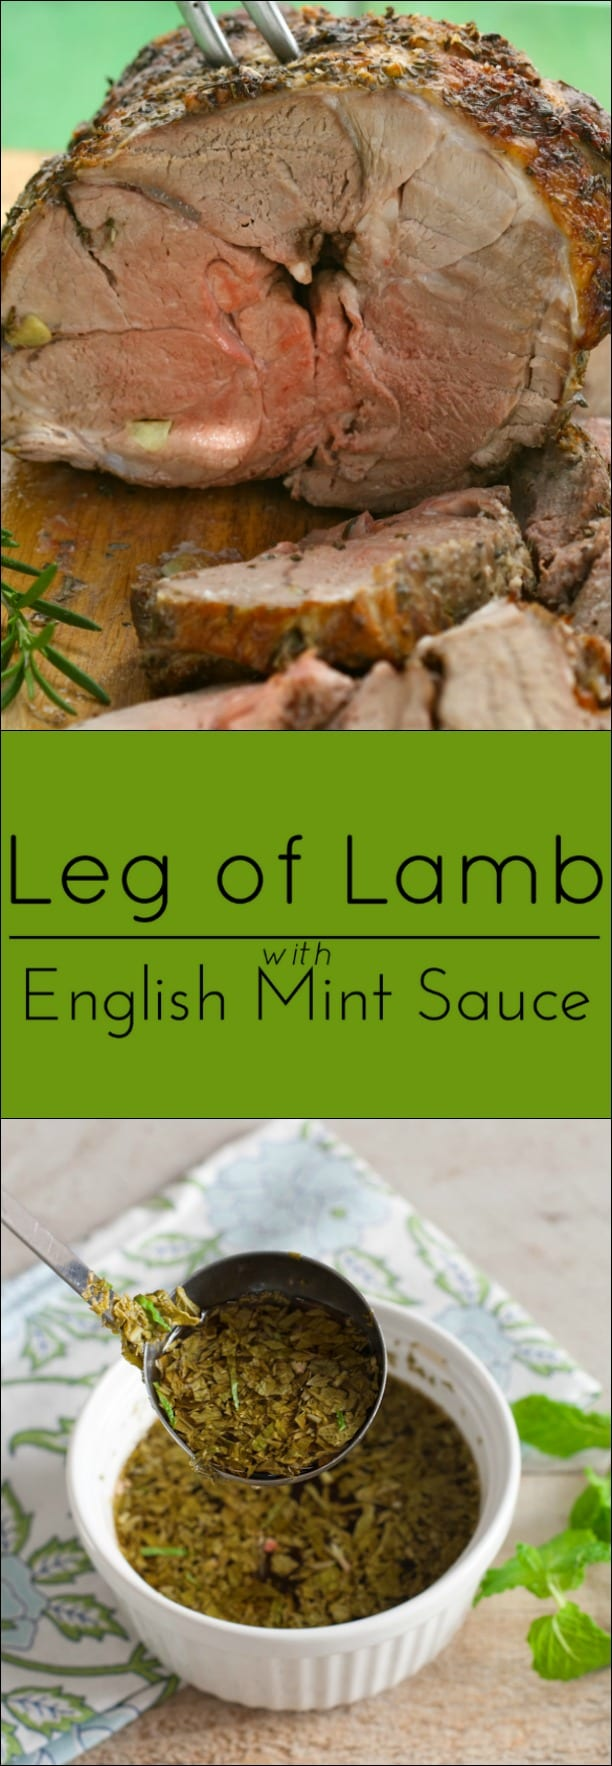 Leg of lamb with English Mint Sauce. Gluten free, low-carb.